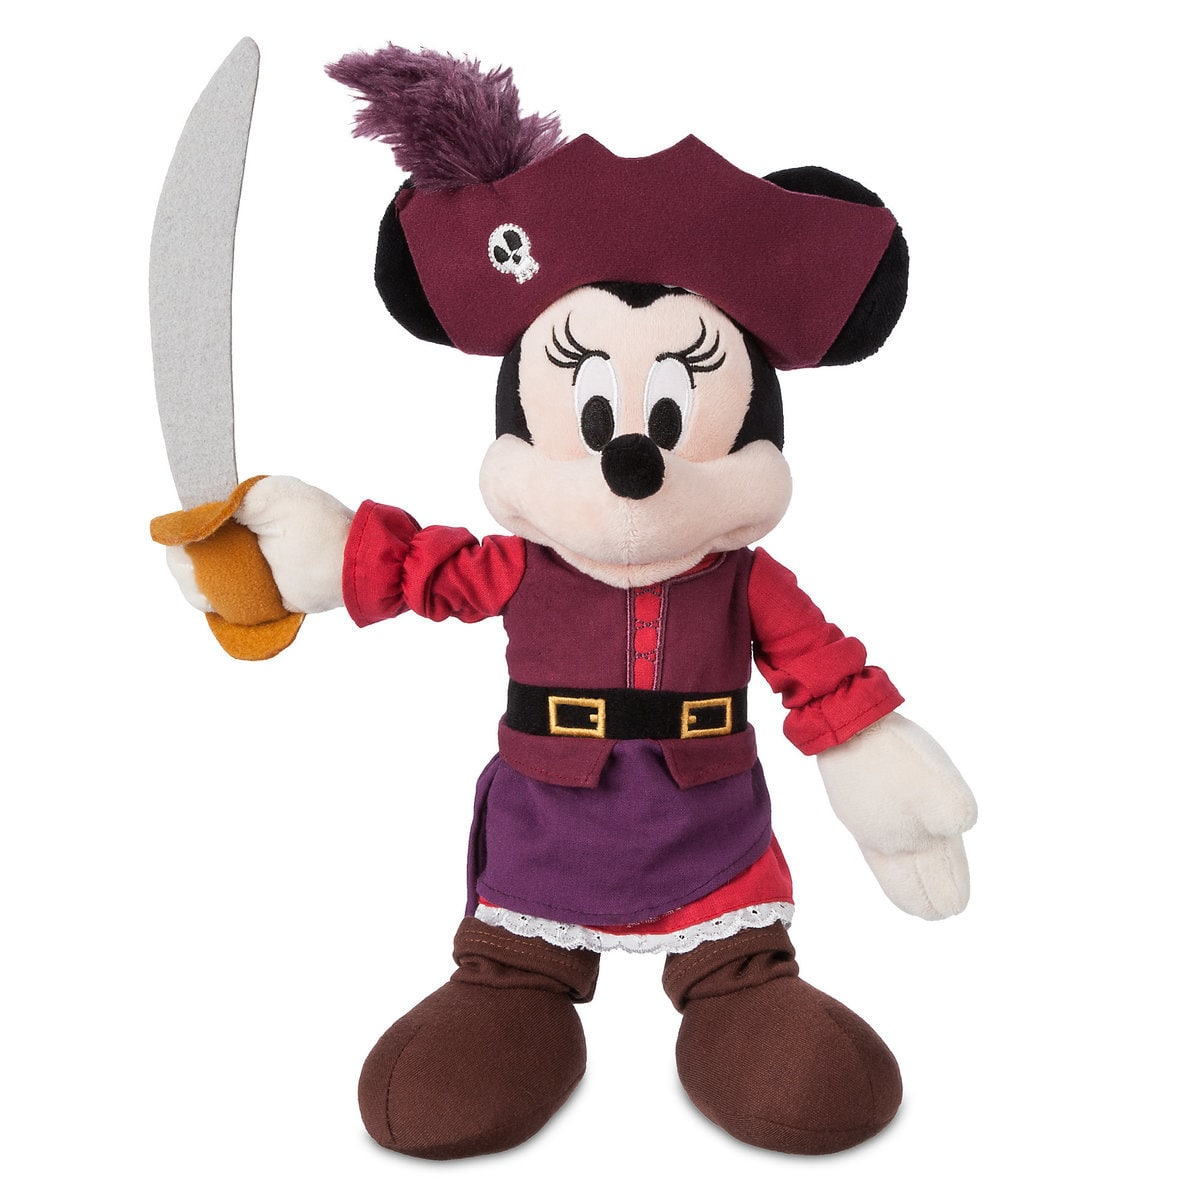 Disney Plush - Pirates of the Caribbean - Minnie Mouse - 12